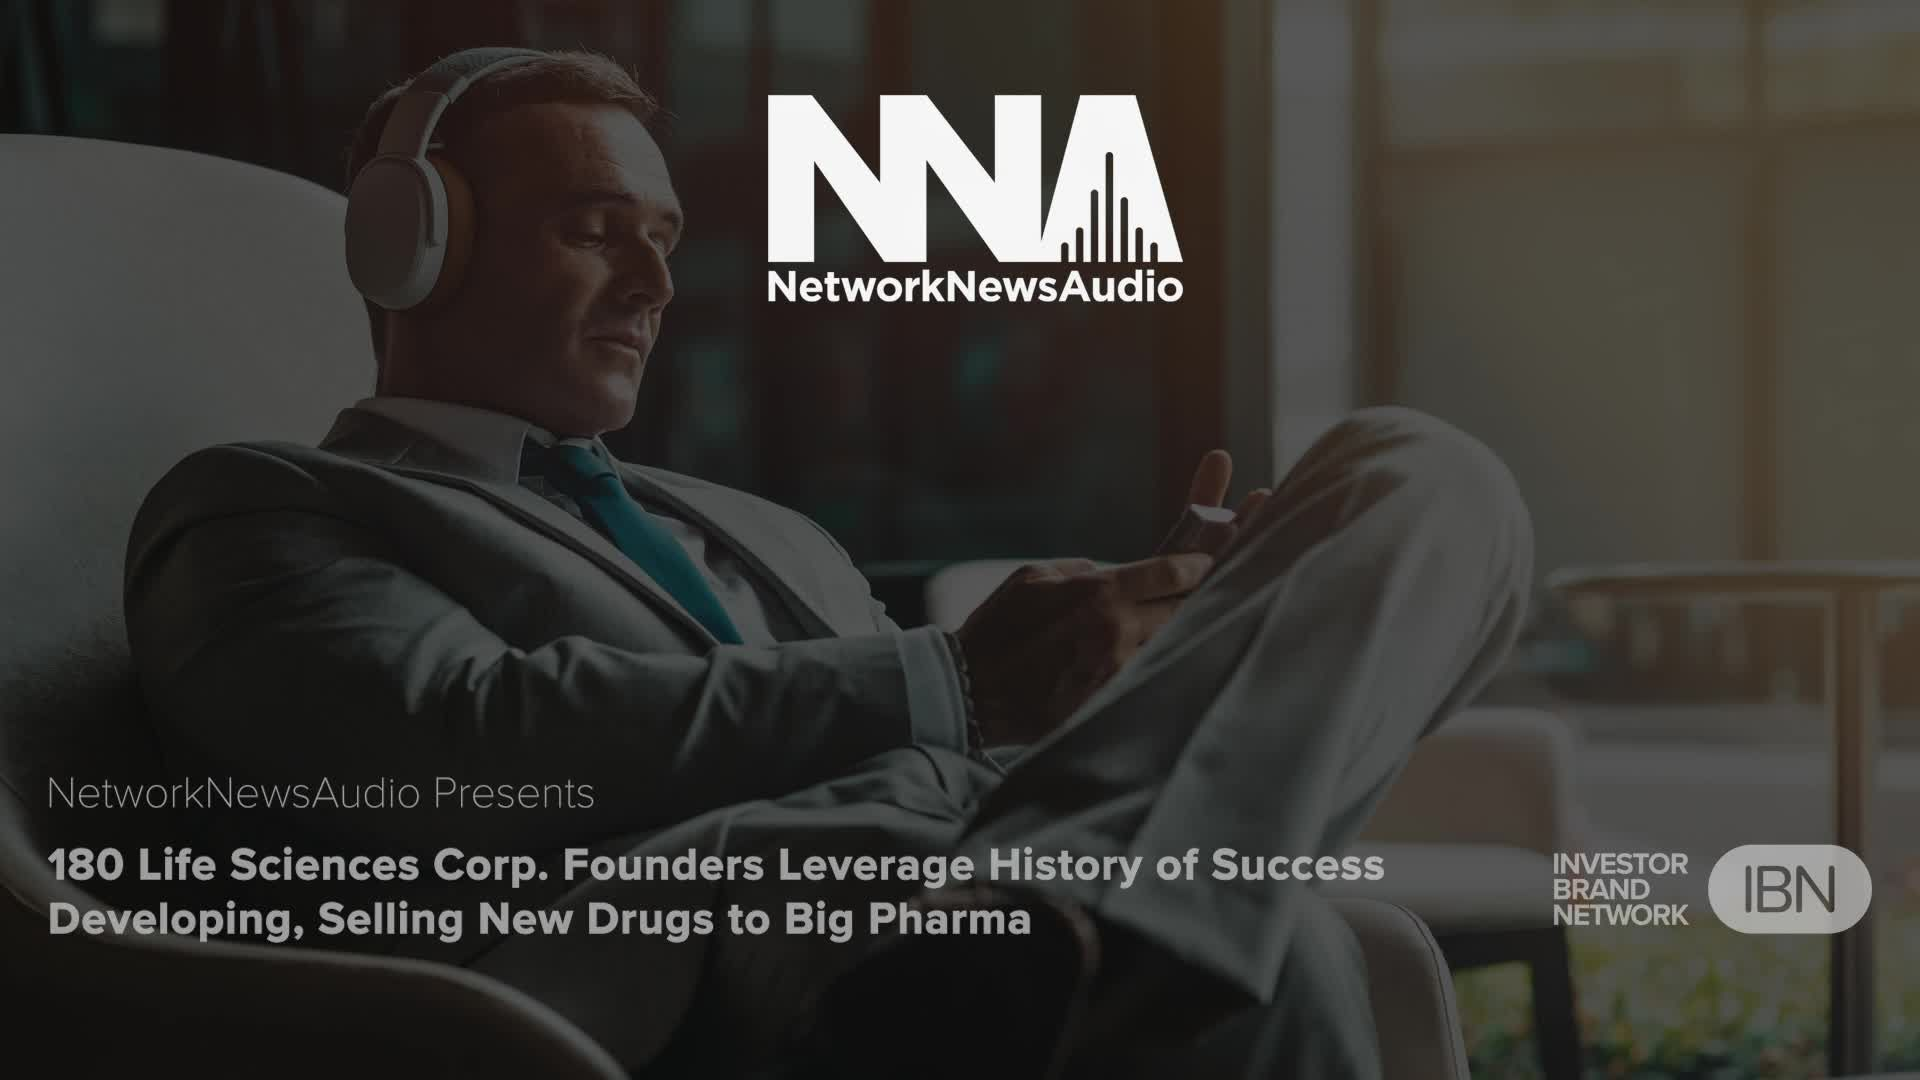 InvestorBrandNetwork-NetworkNewsAudio News-180 Life Sciences Corp. Founders Leverage History of Success Developing, Selling New Drugs to Big Pharma